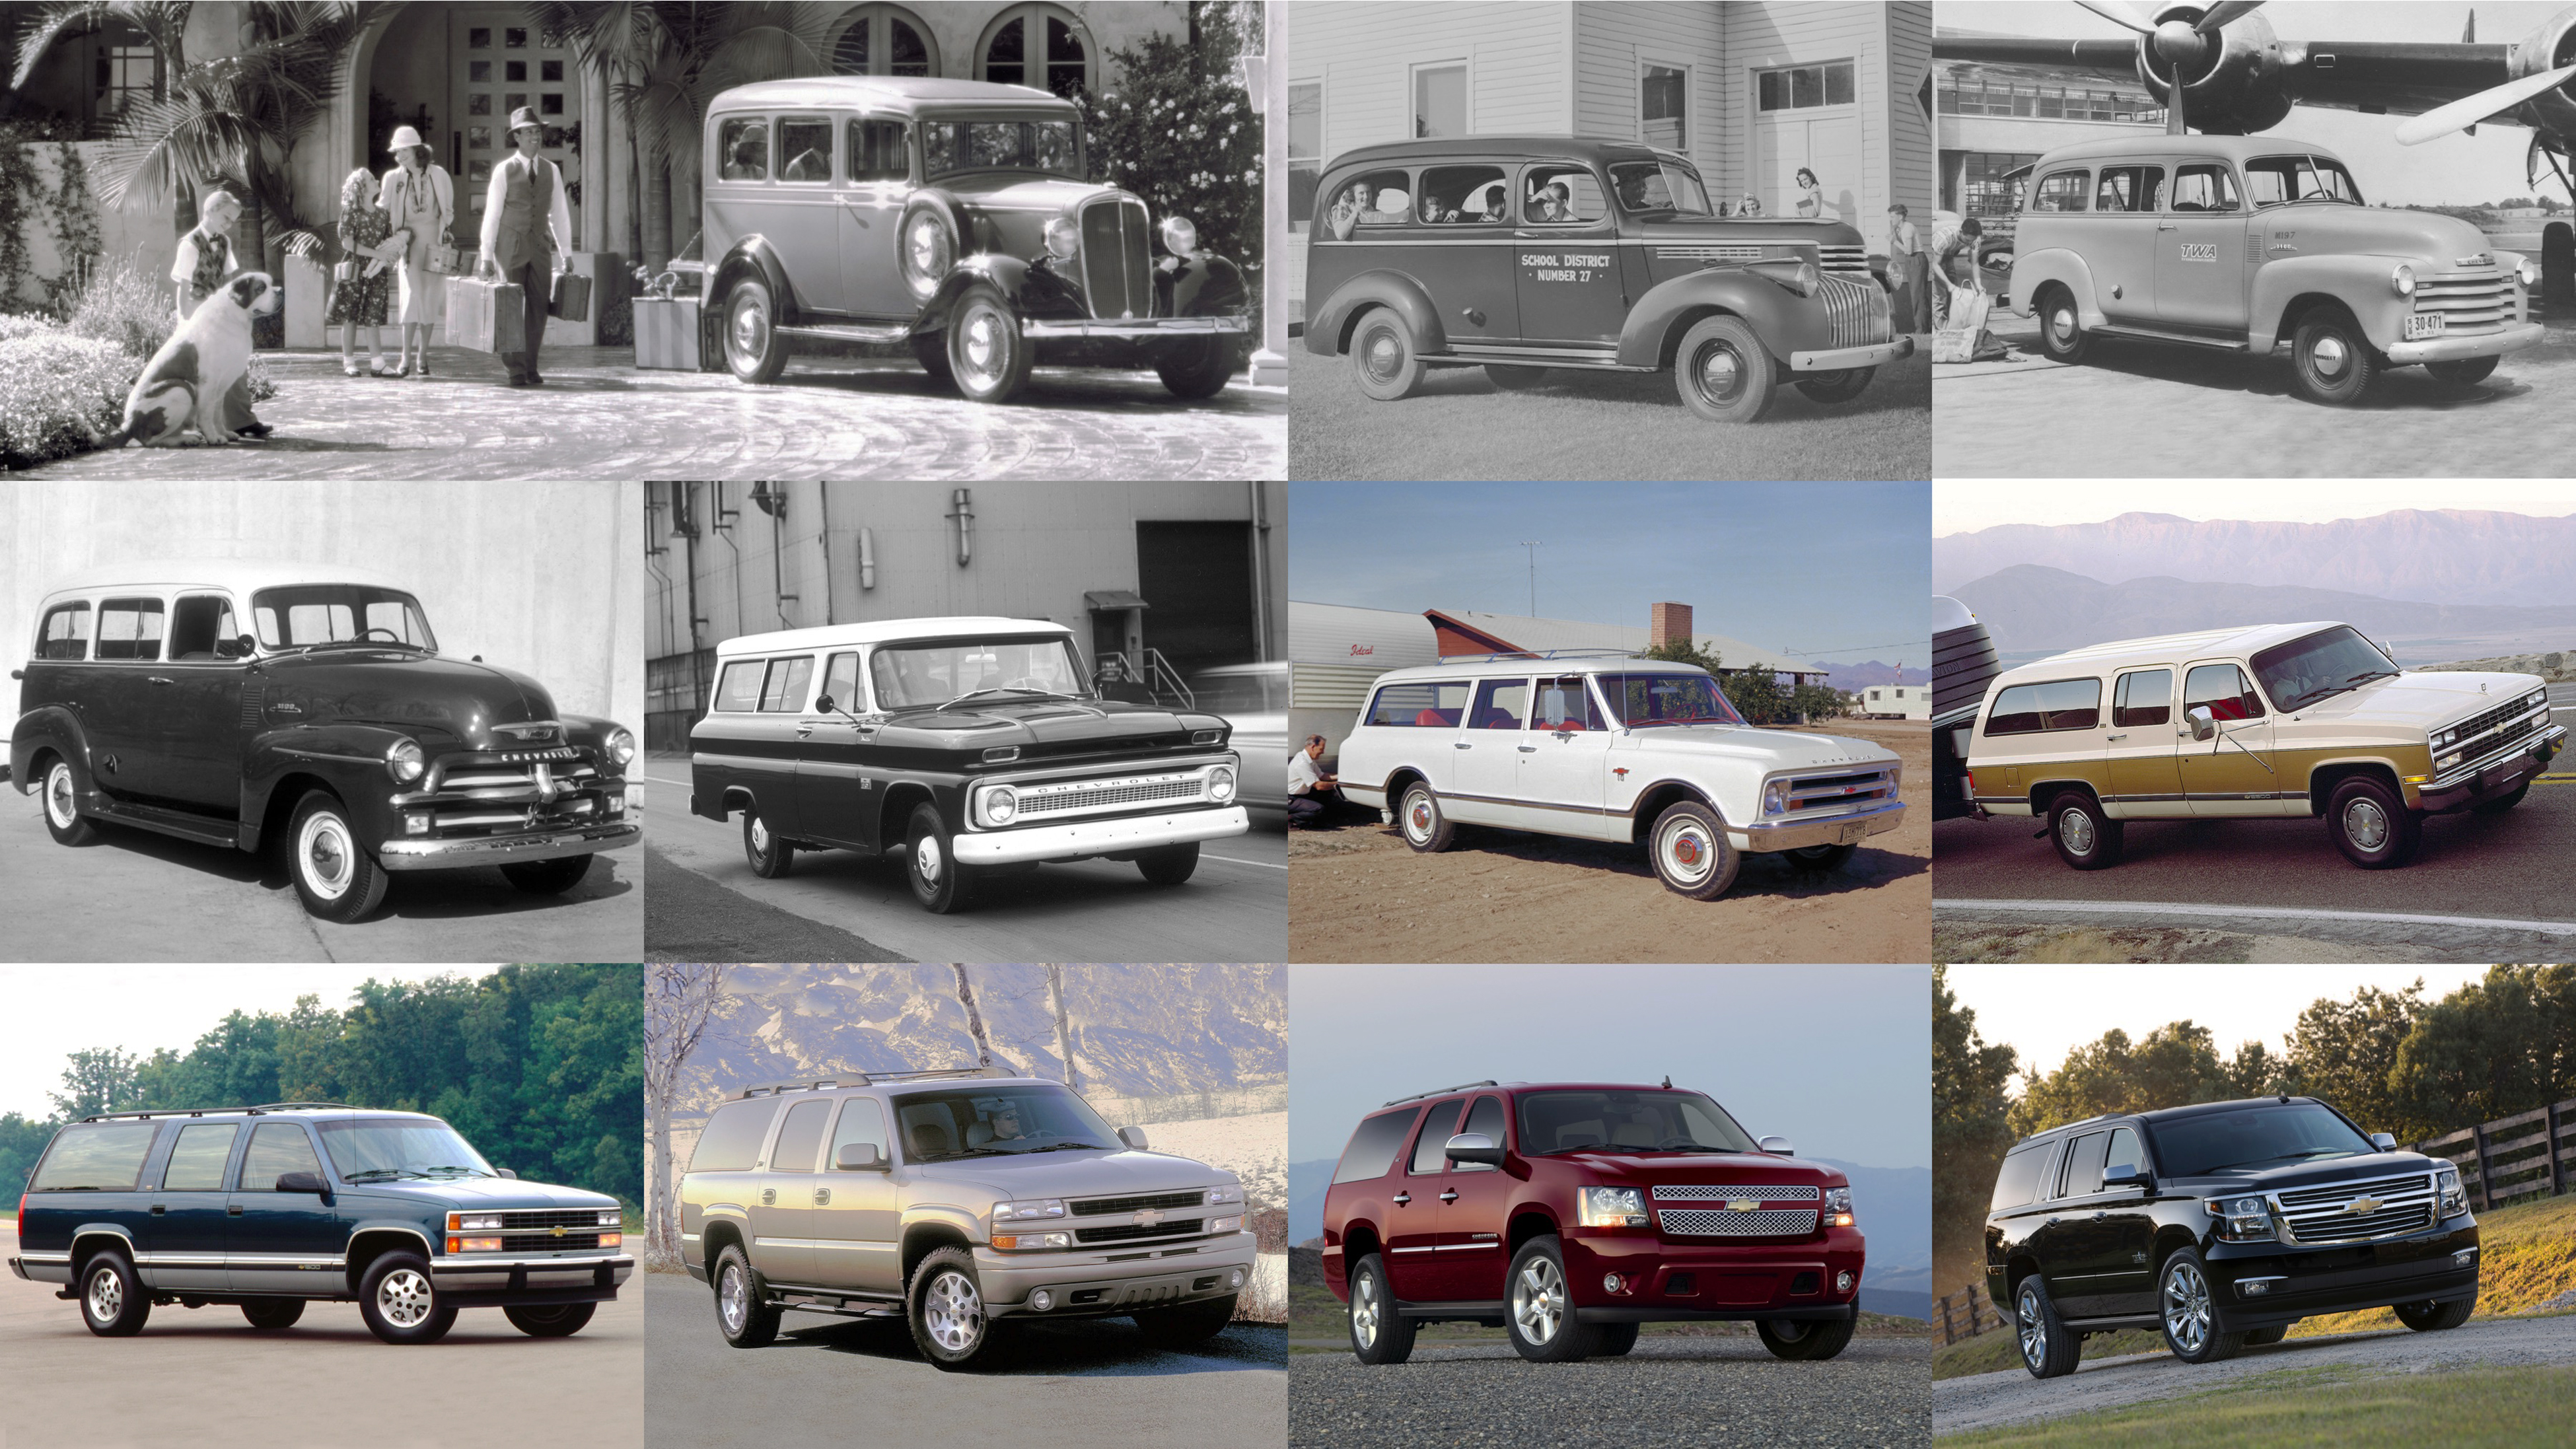 Suburbans through the years